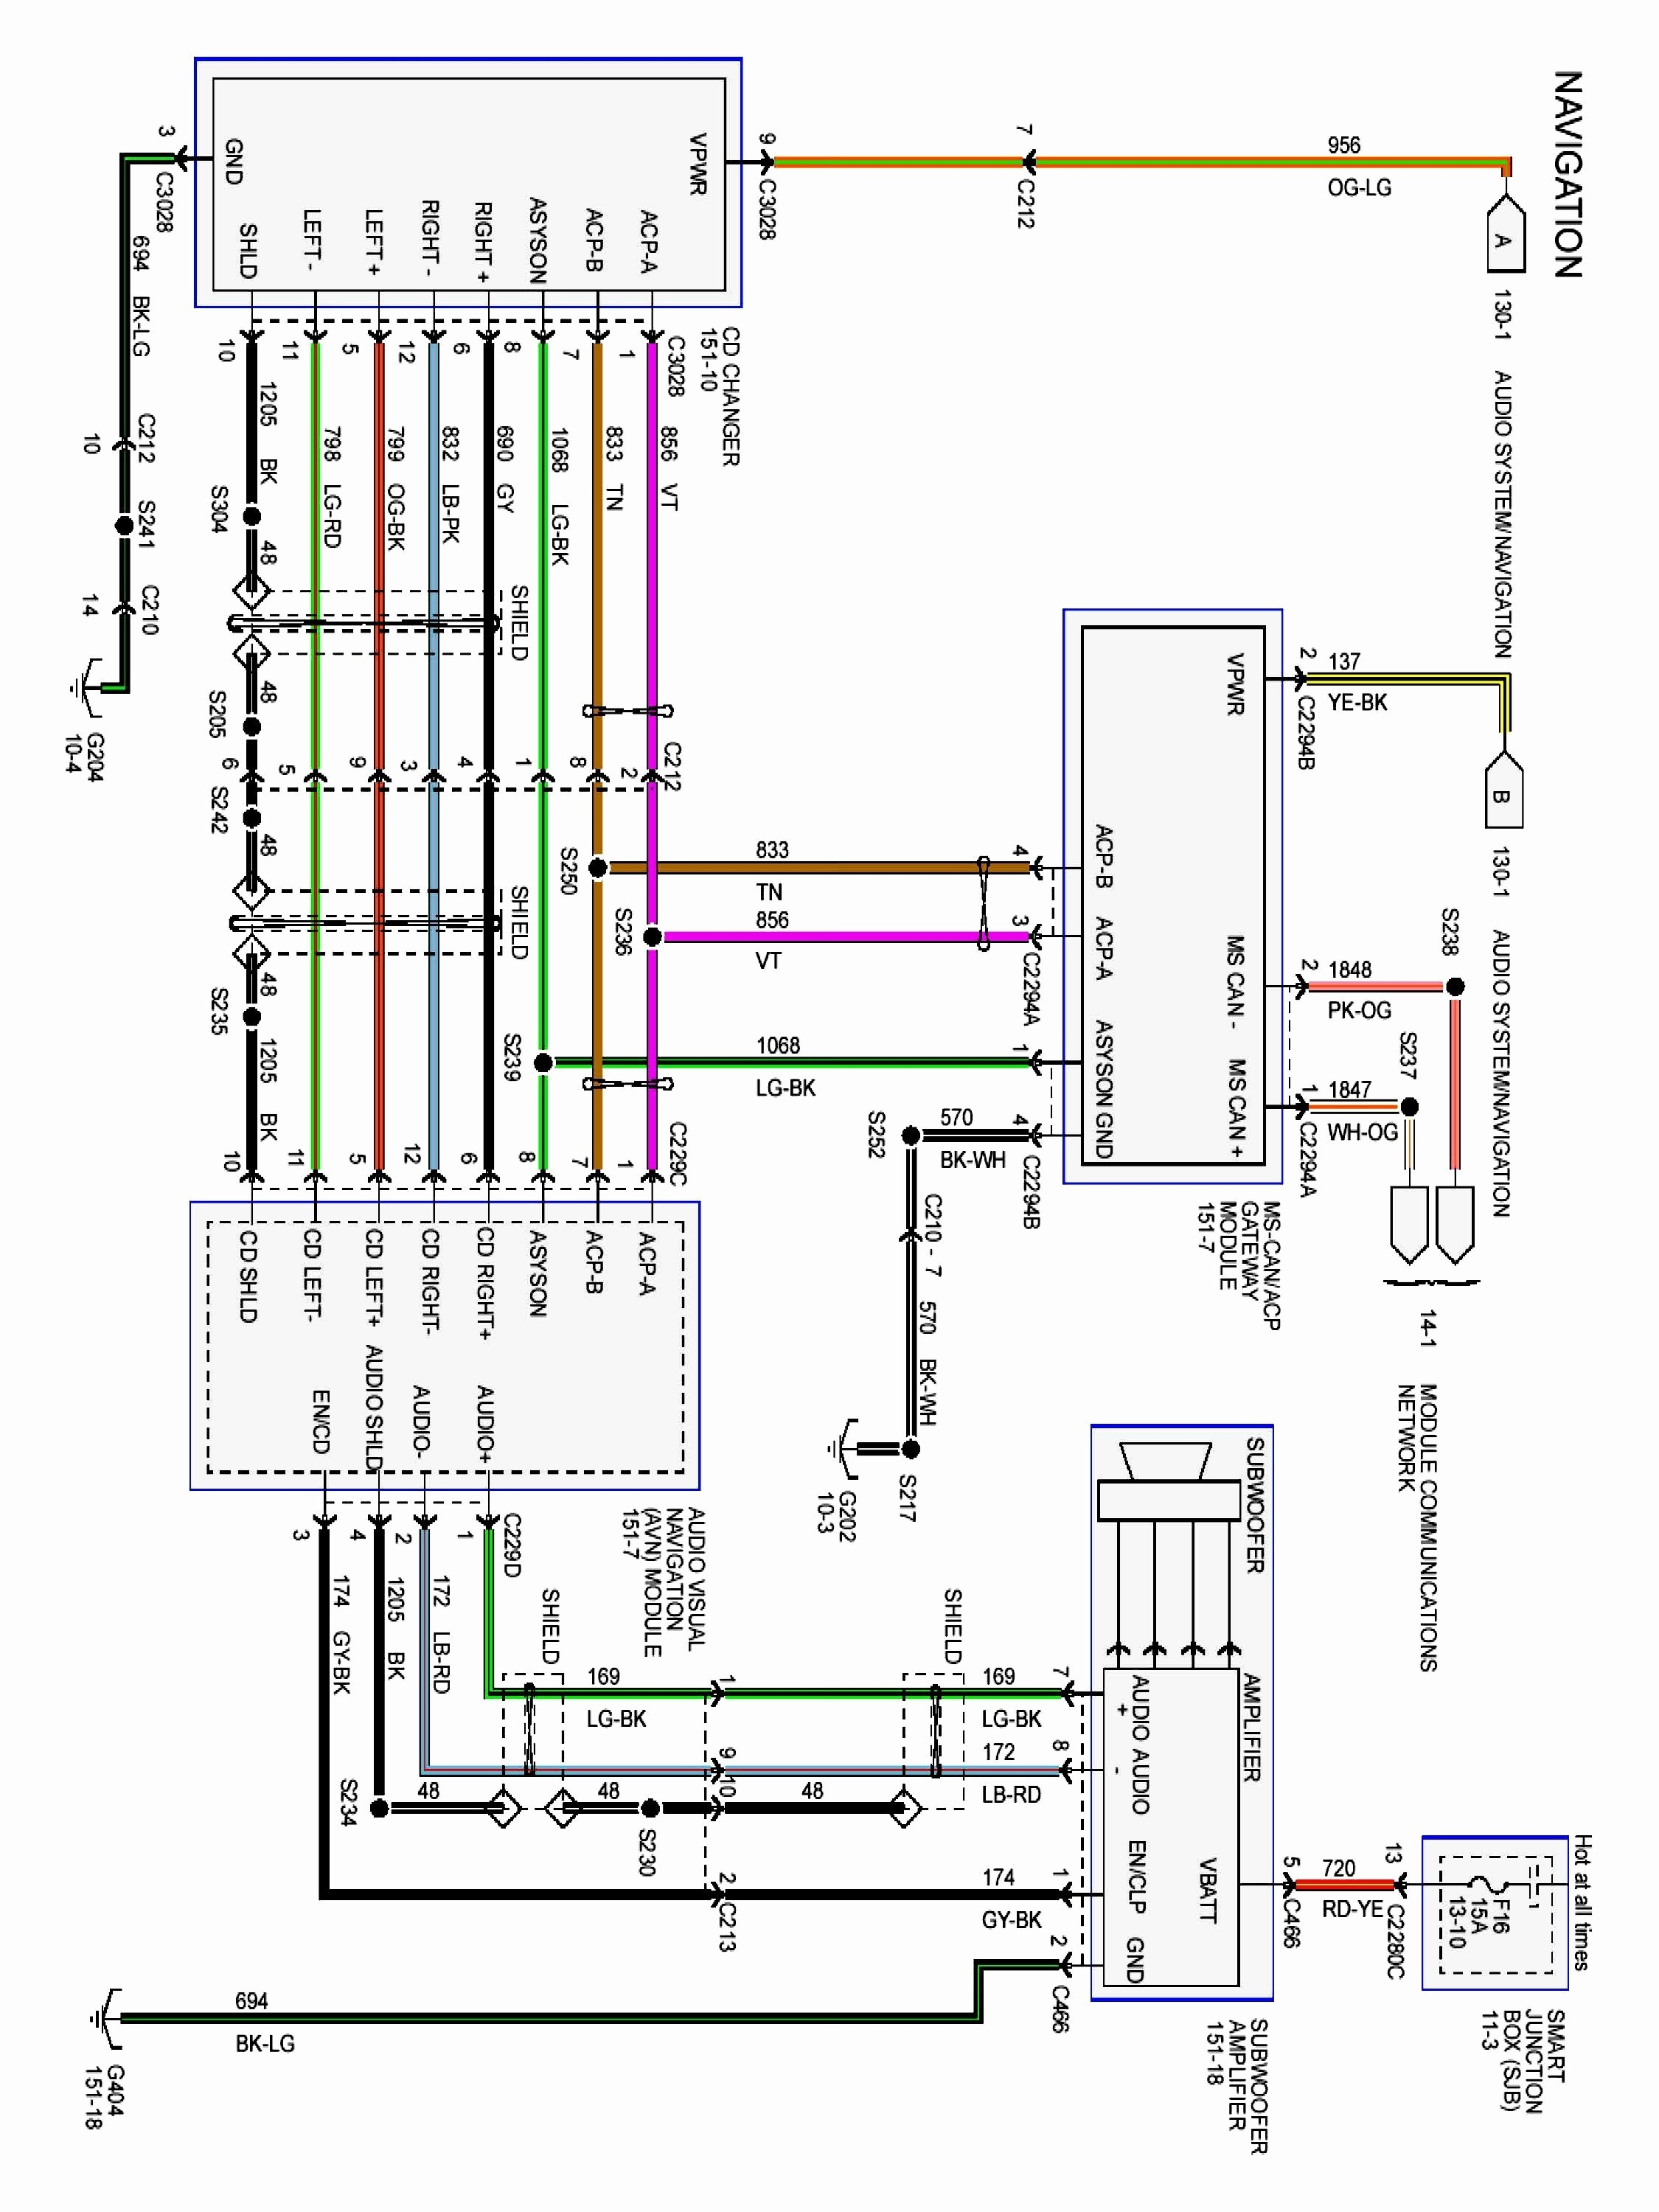 2003 Mustang Stereo Wiring Diagram Wiring Diagram Sit Overview Sit Overview Lasuiteclub It